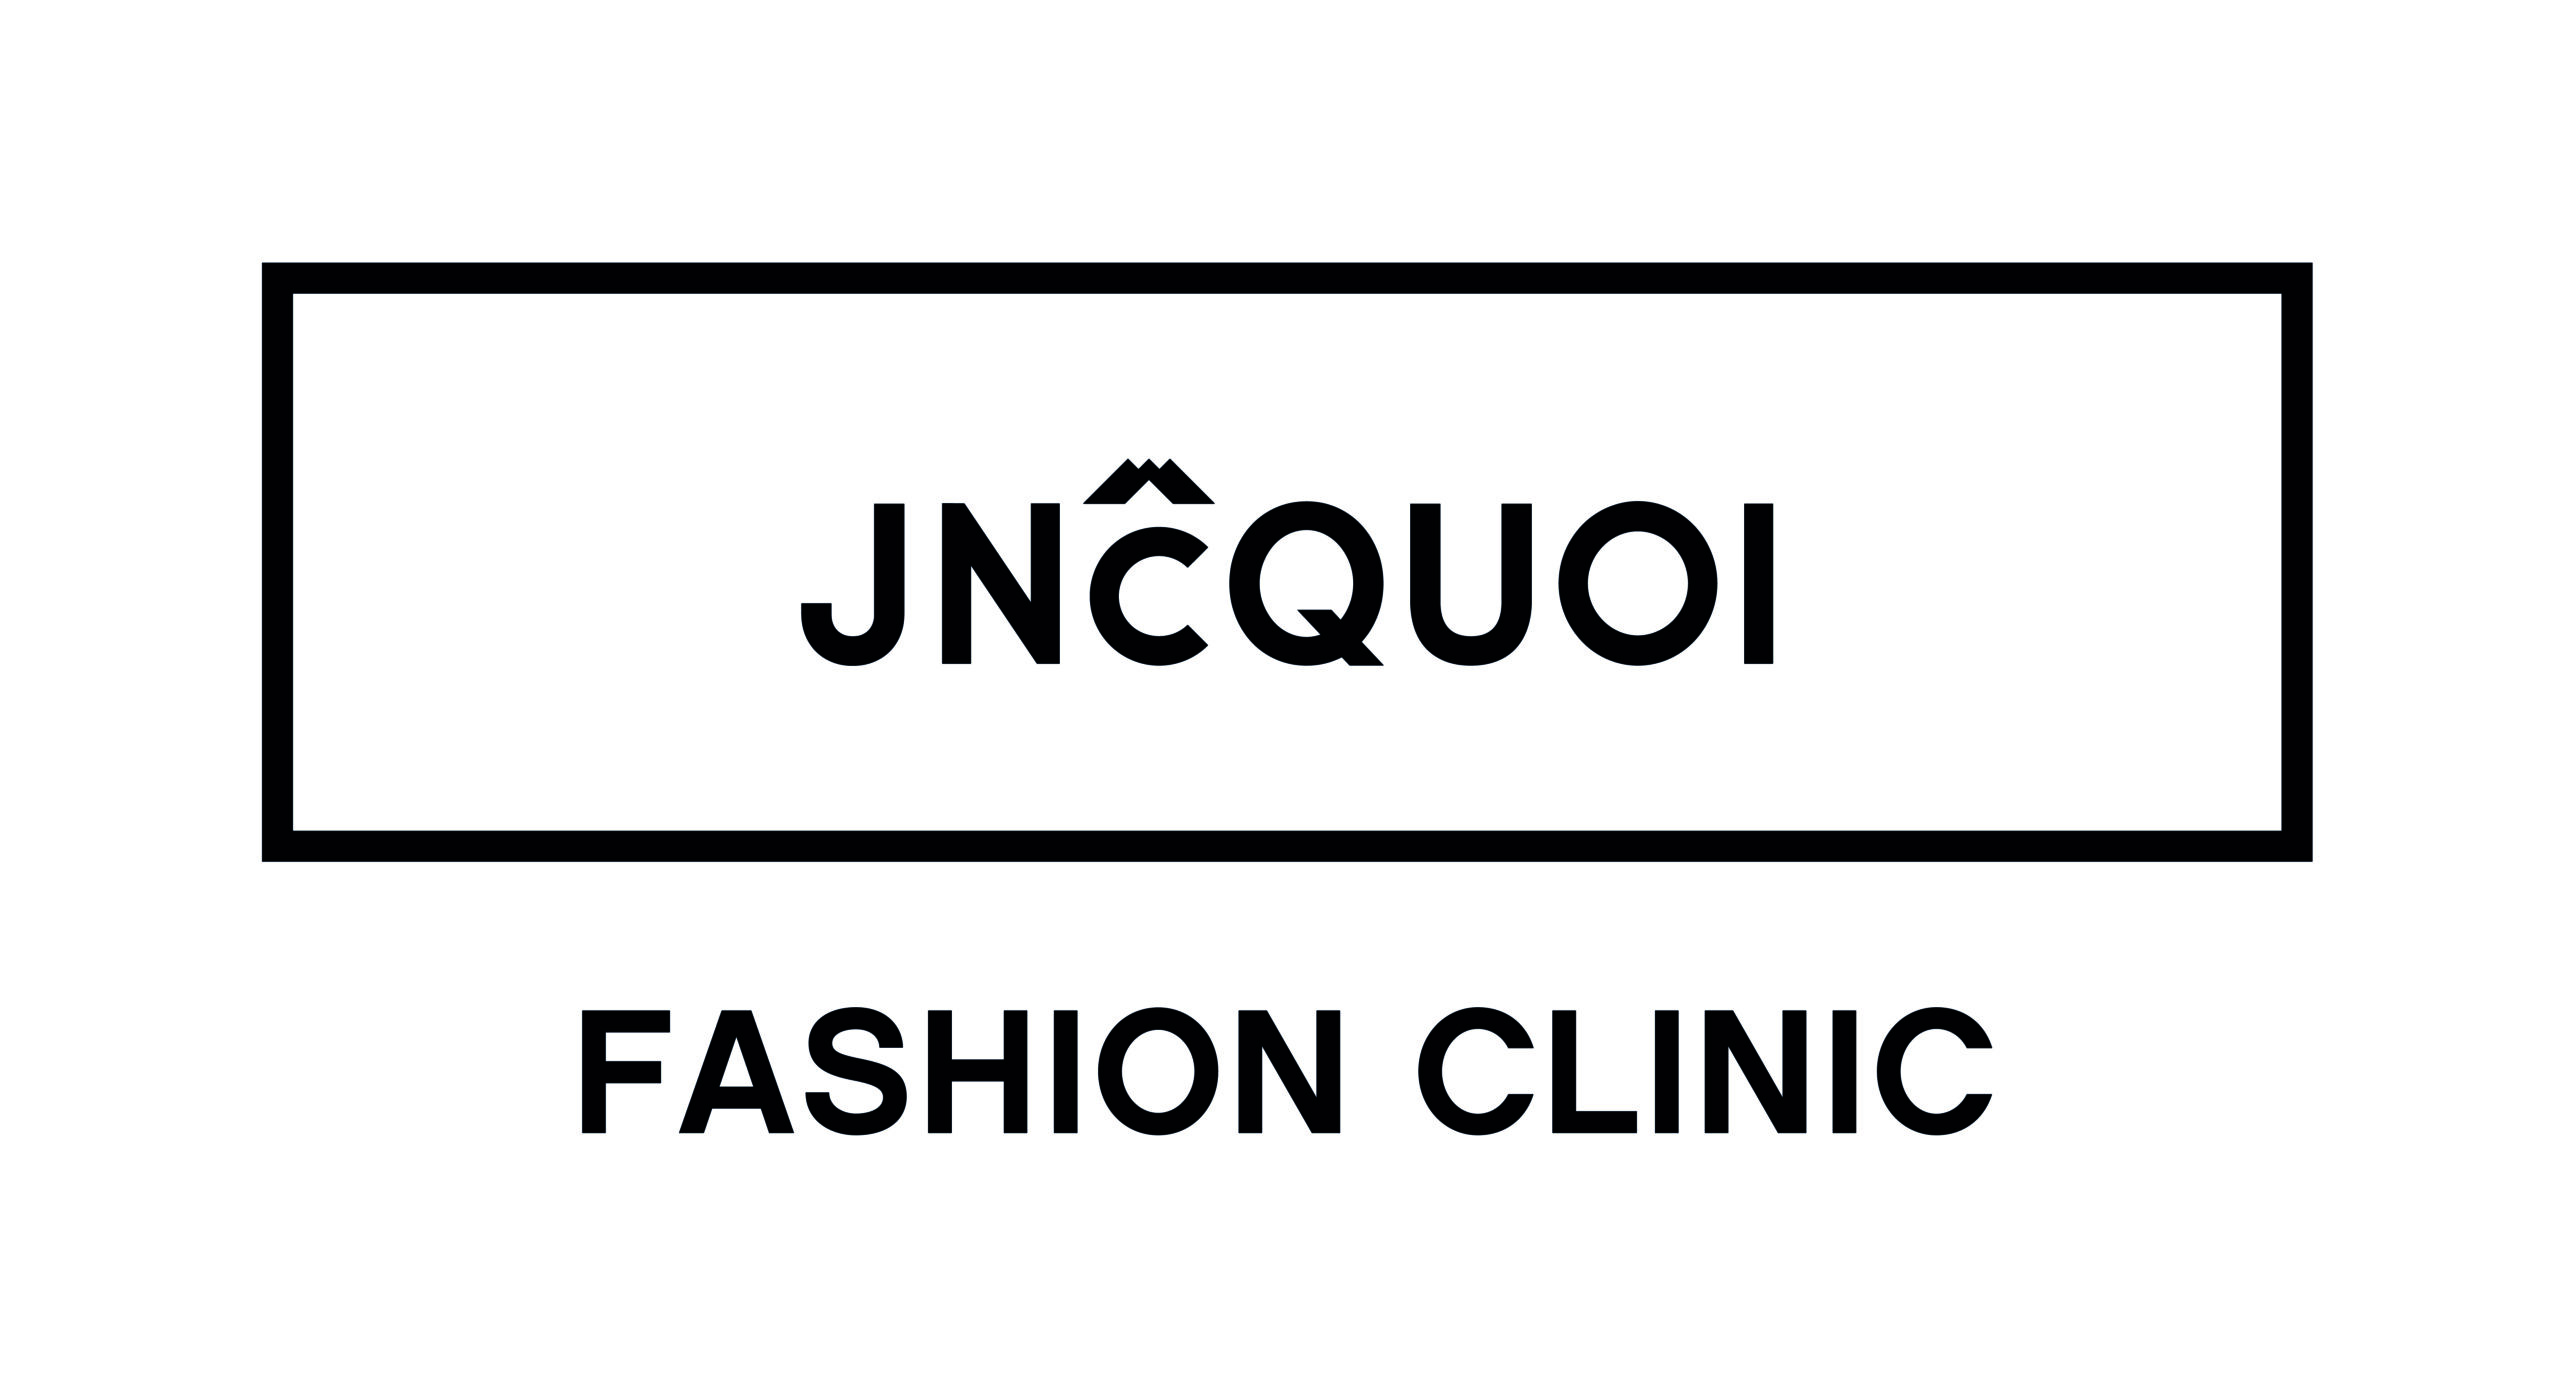 Fashion Clinic logo